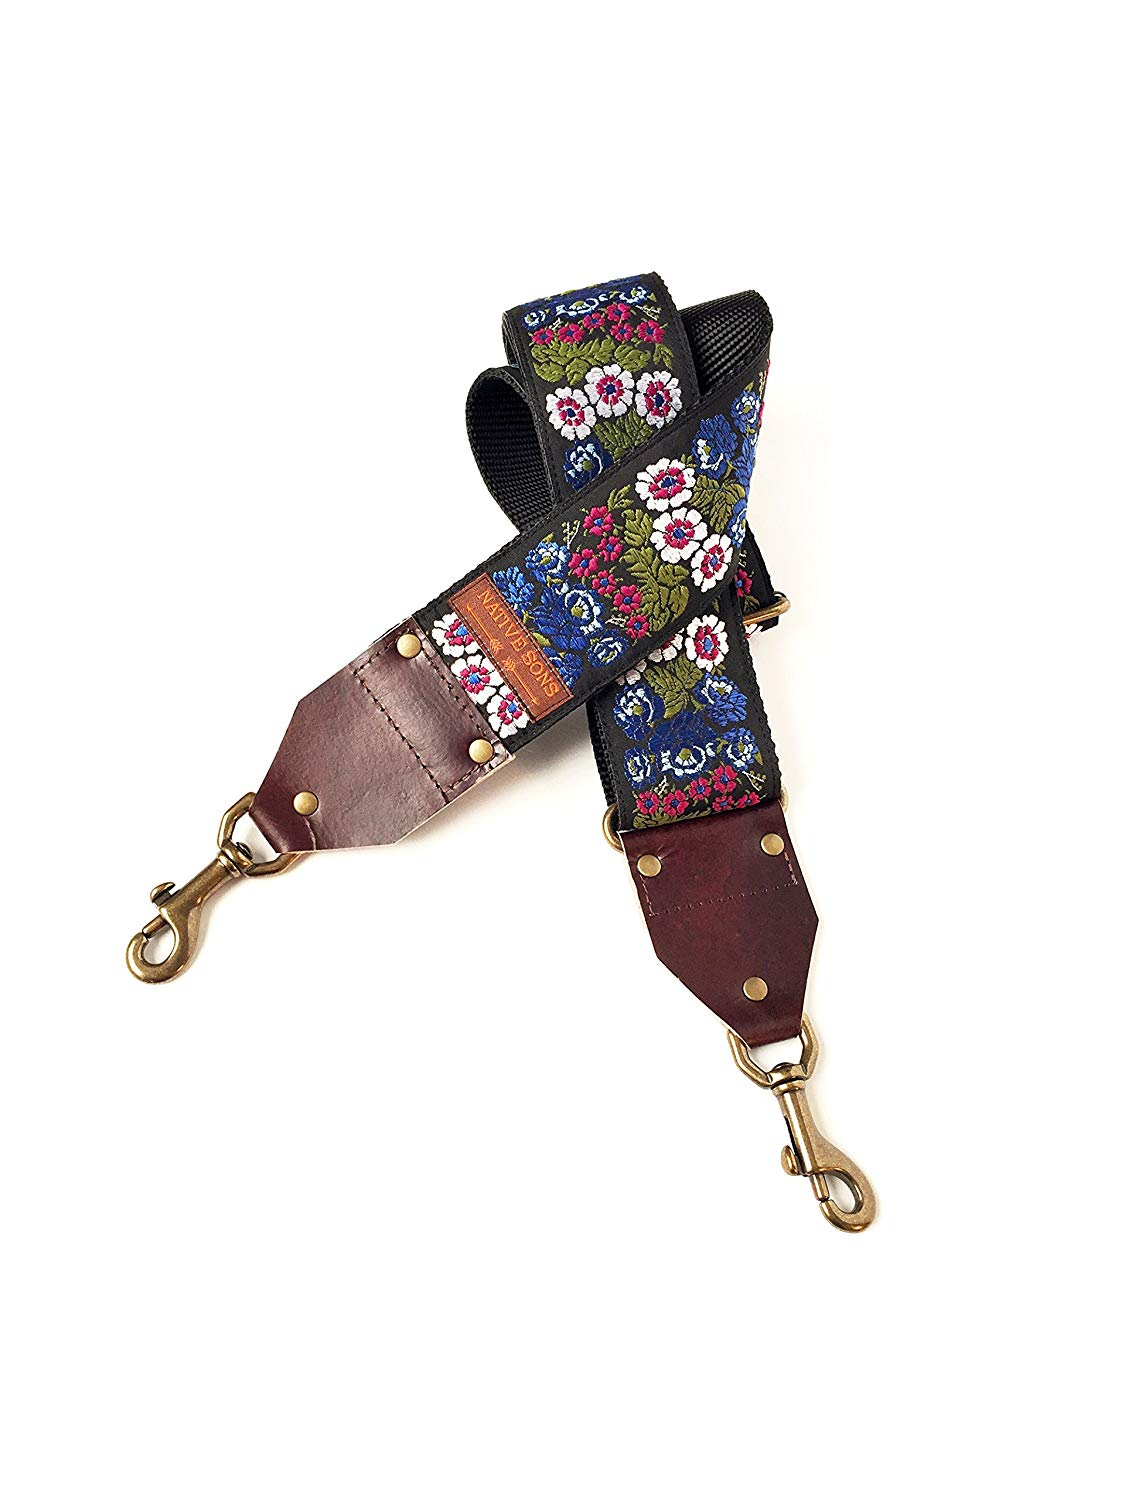 The Aster Guitar Strap Style Bag Strap- Unique Blue, green and Purple floral strap on Black background for purse, handbag, luggage strap,